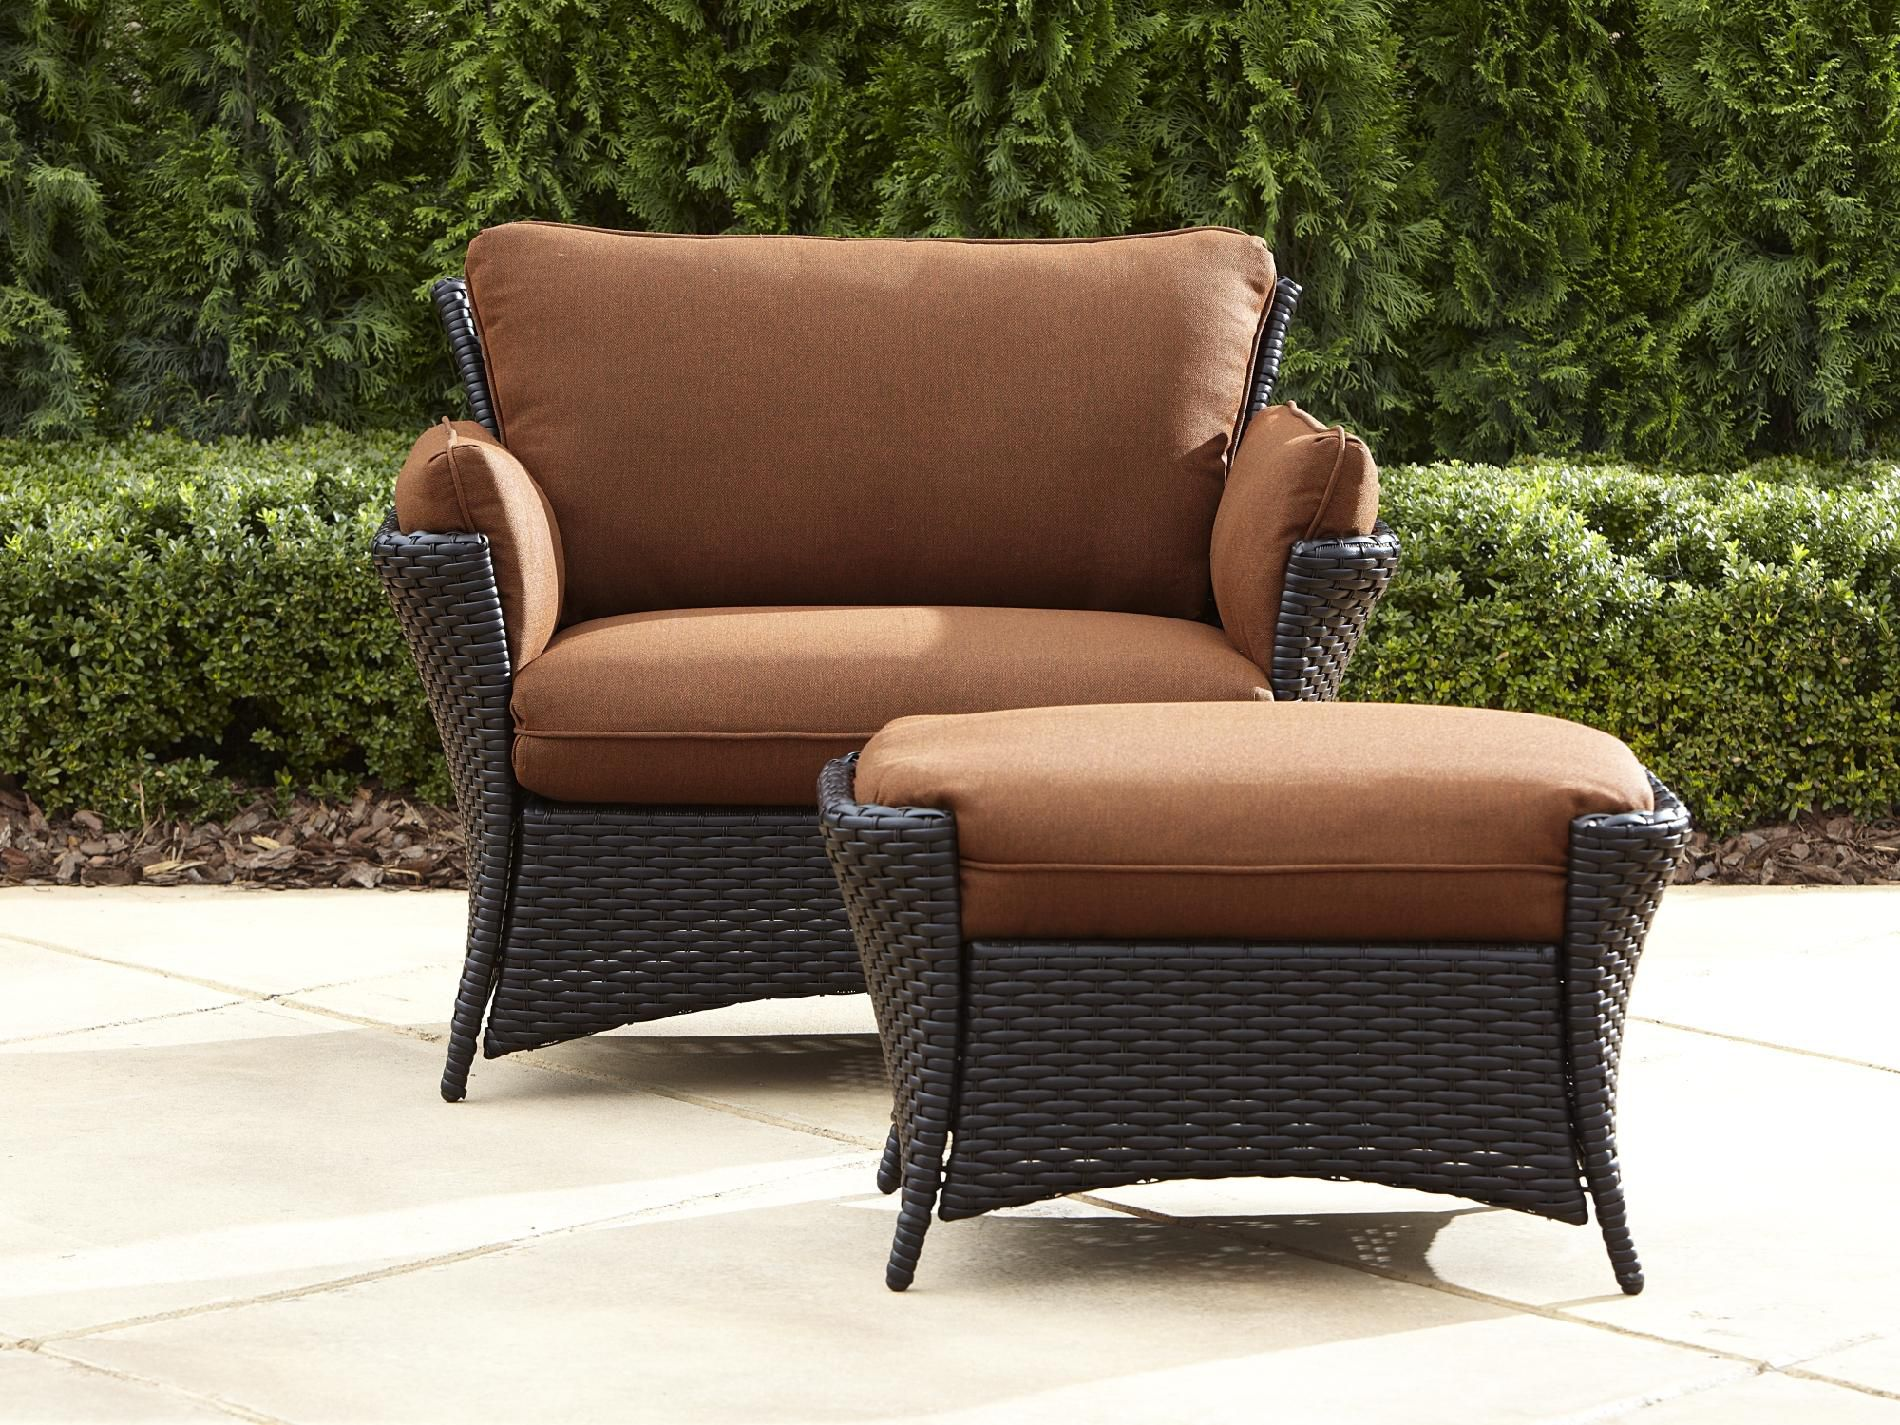 LaZBoy Everett Oversized Chair with Ottoman Limited